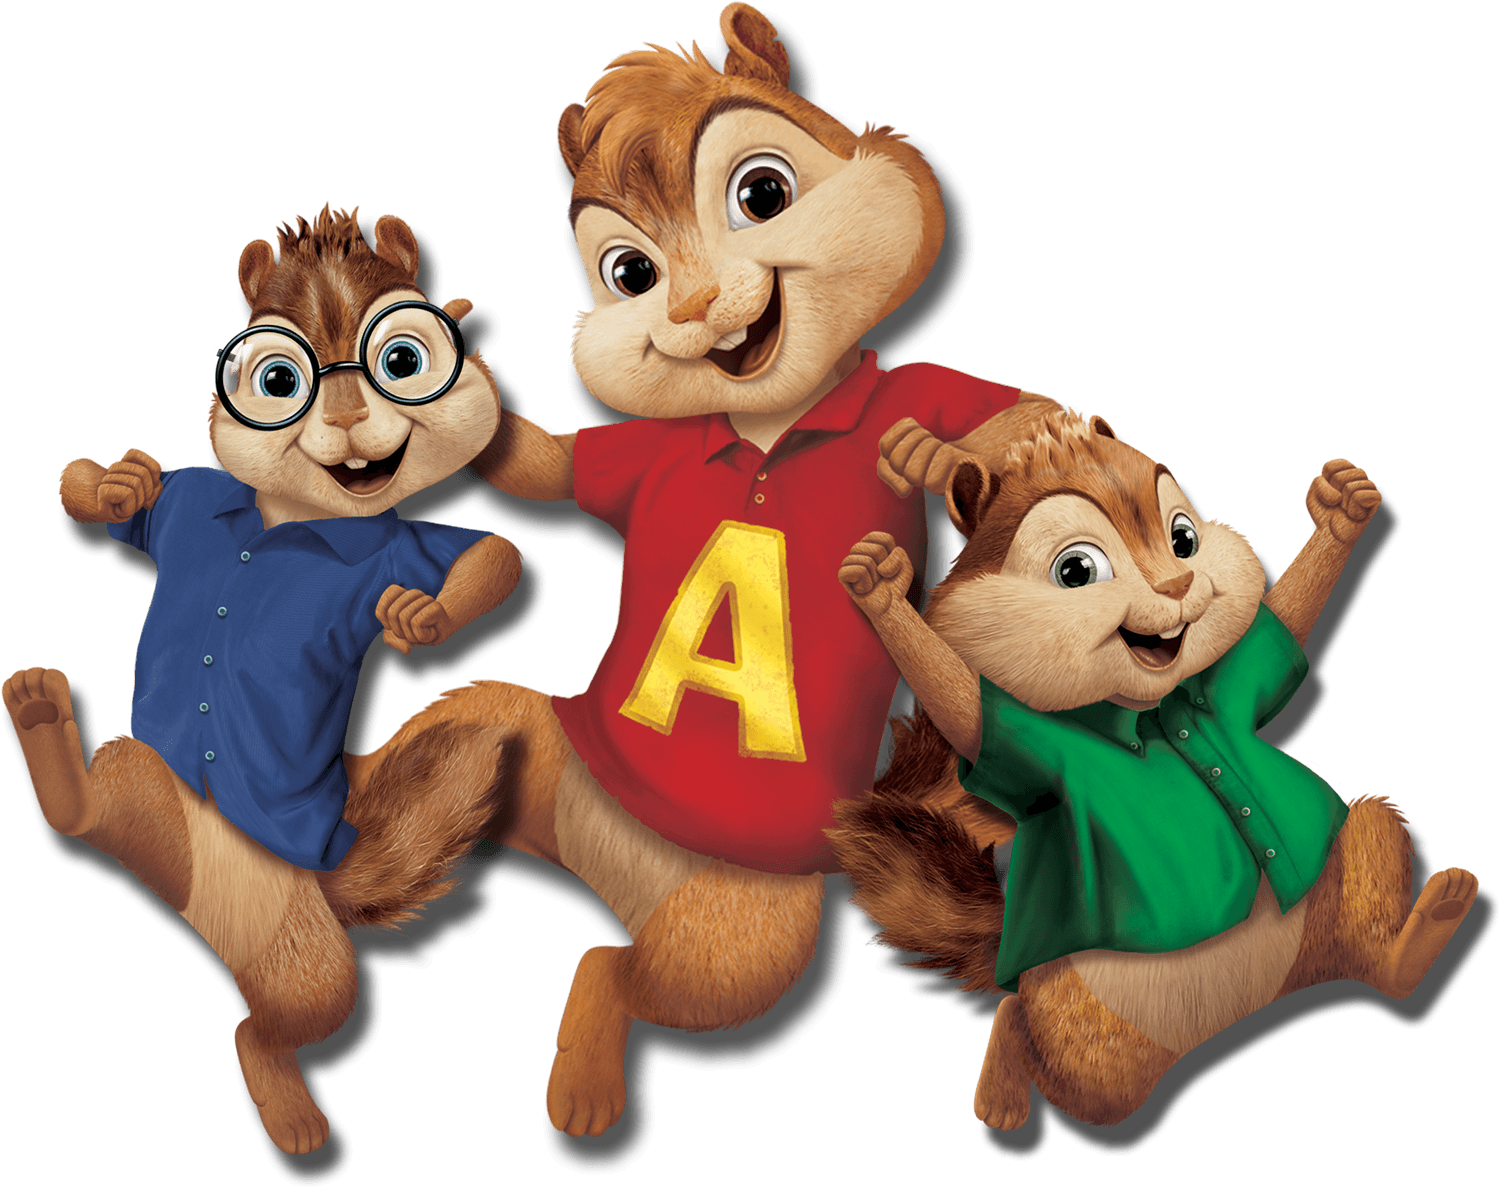 HQ Alvin And The Chipmunks Wallpapers | File 432.08Kb